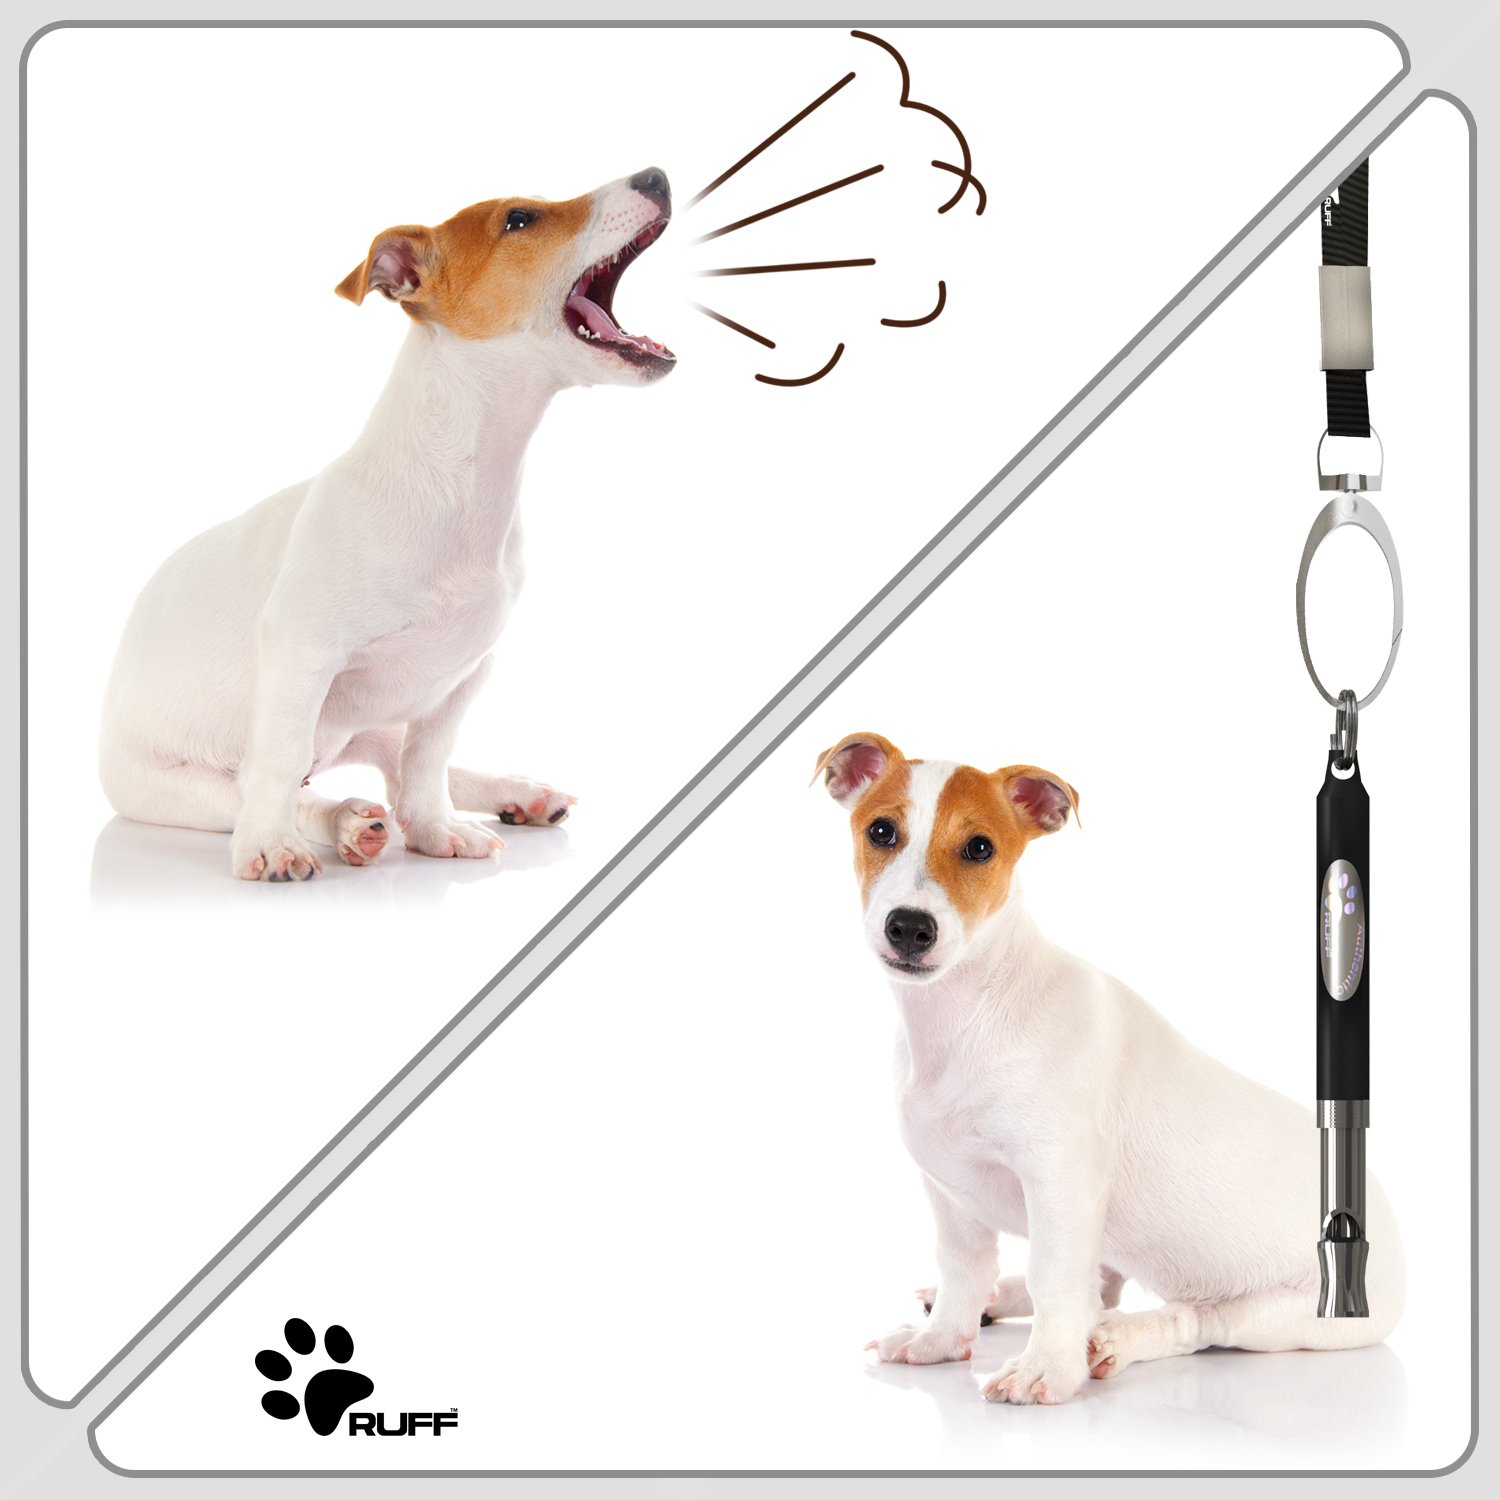 Ruff Dog Whistle To Stop Barking Train Dogs Safely Fast Best Ultrasonic Pc Related Power Supplies And Control New Improved Anti Loss Version Adjustable Pet Training Obedience Repellent Aid